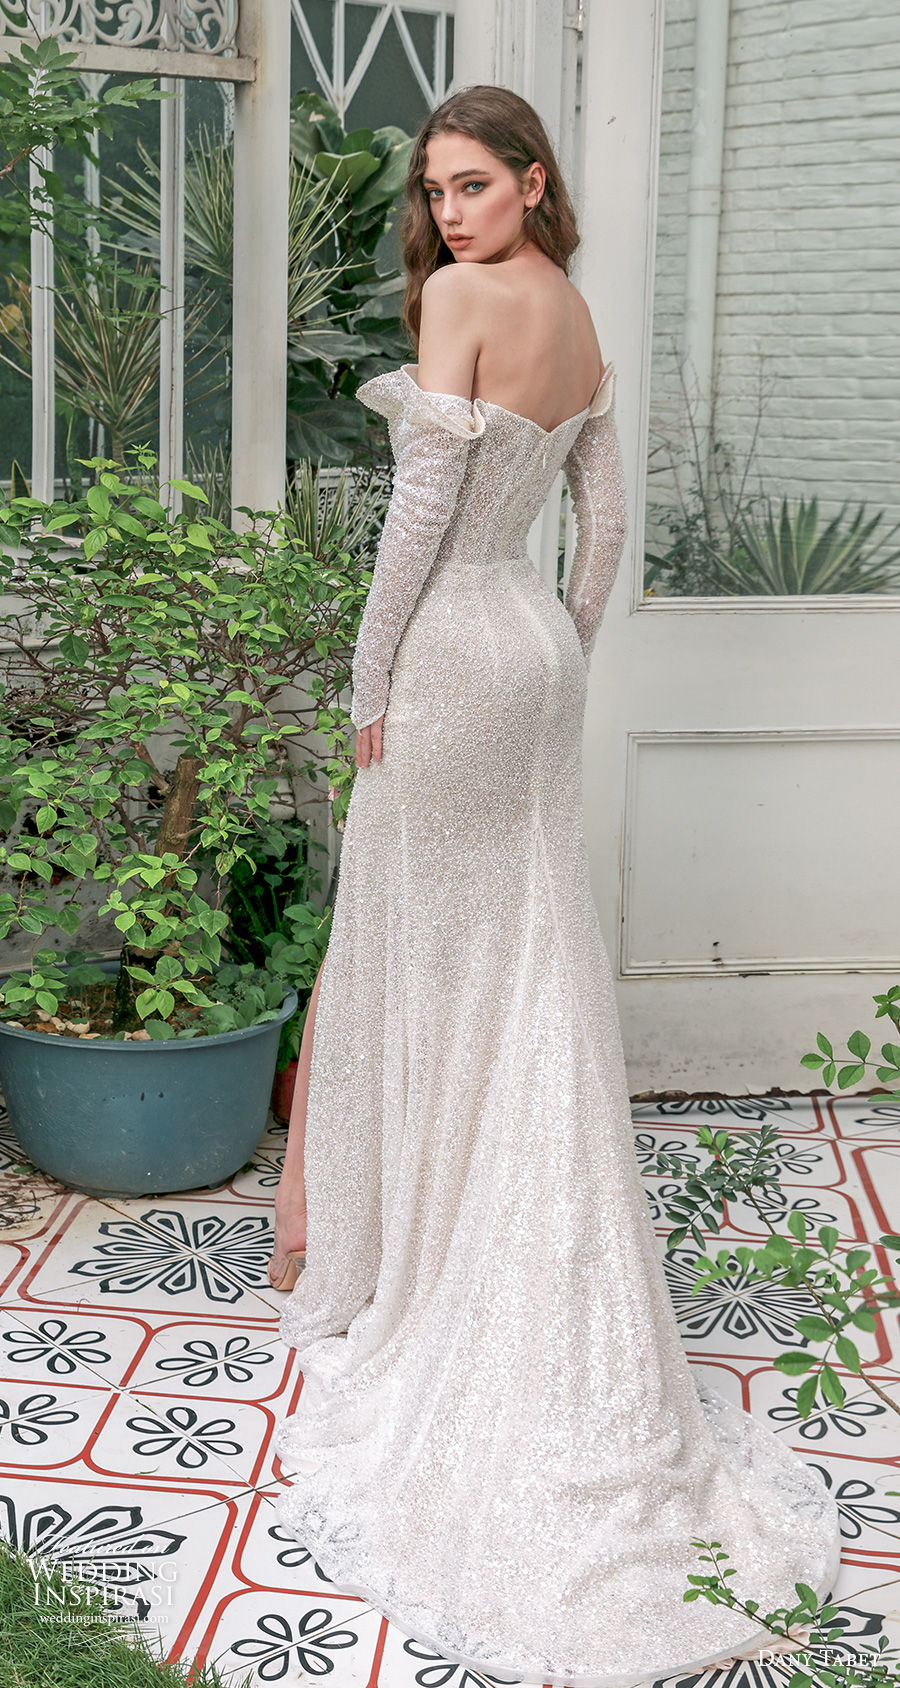 dany tabet 2021 emerge bridal off the shoulder crumb catcher neckline full embellishment glitter slit skirt glamorous sheath wedding dress mid backshort train (15) bv